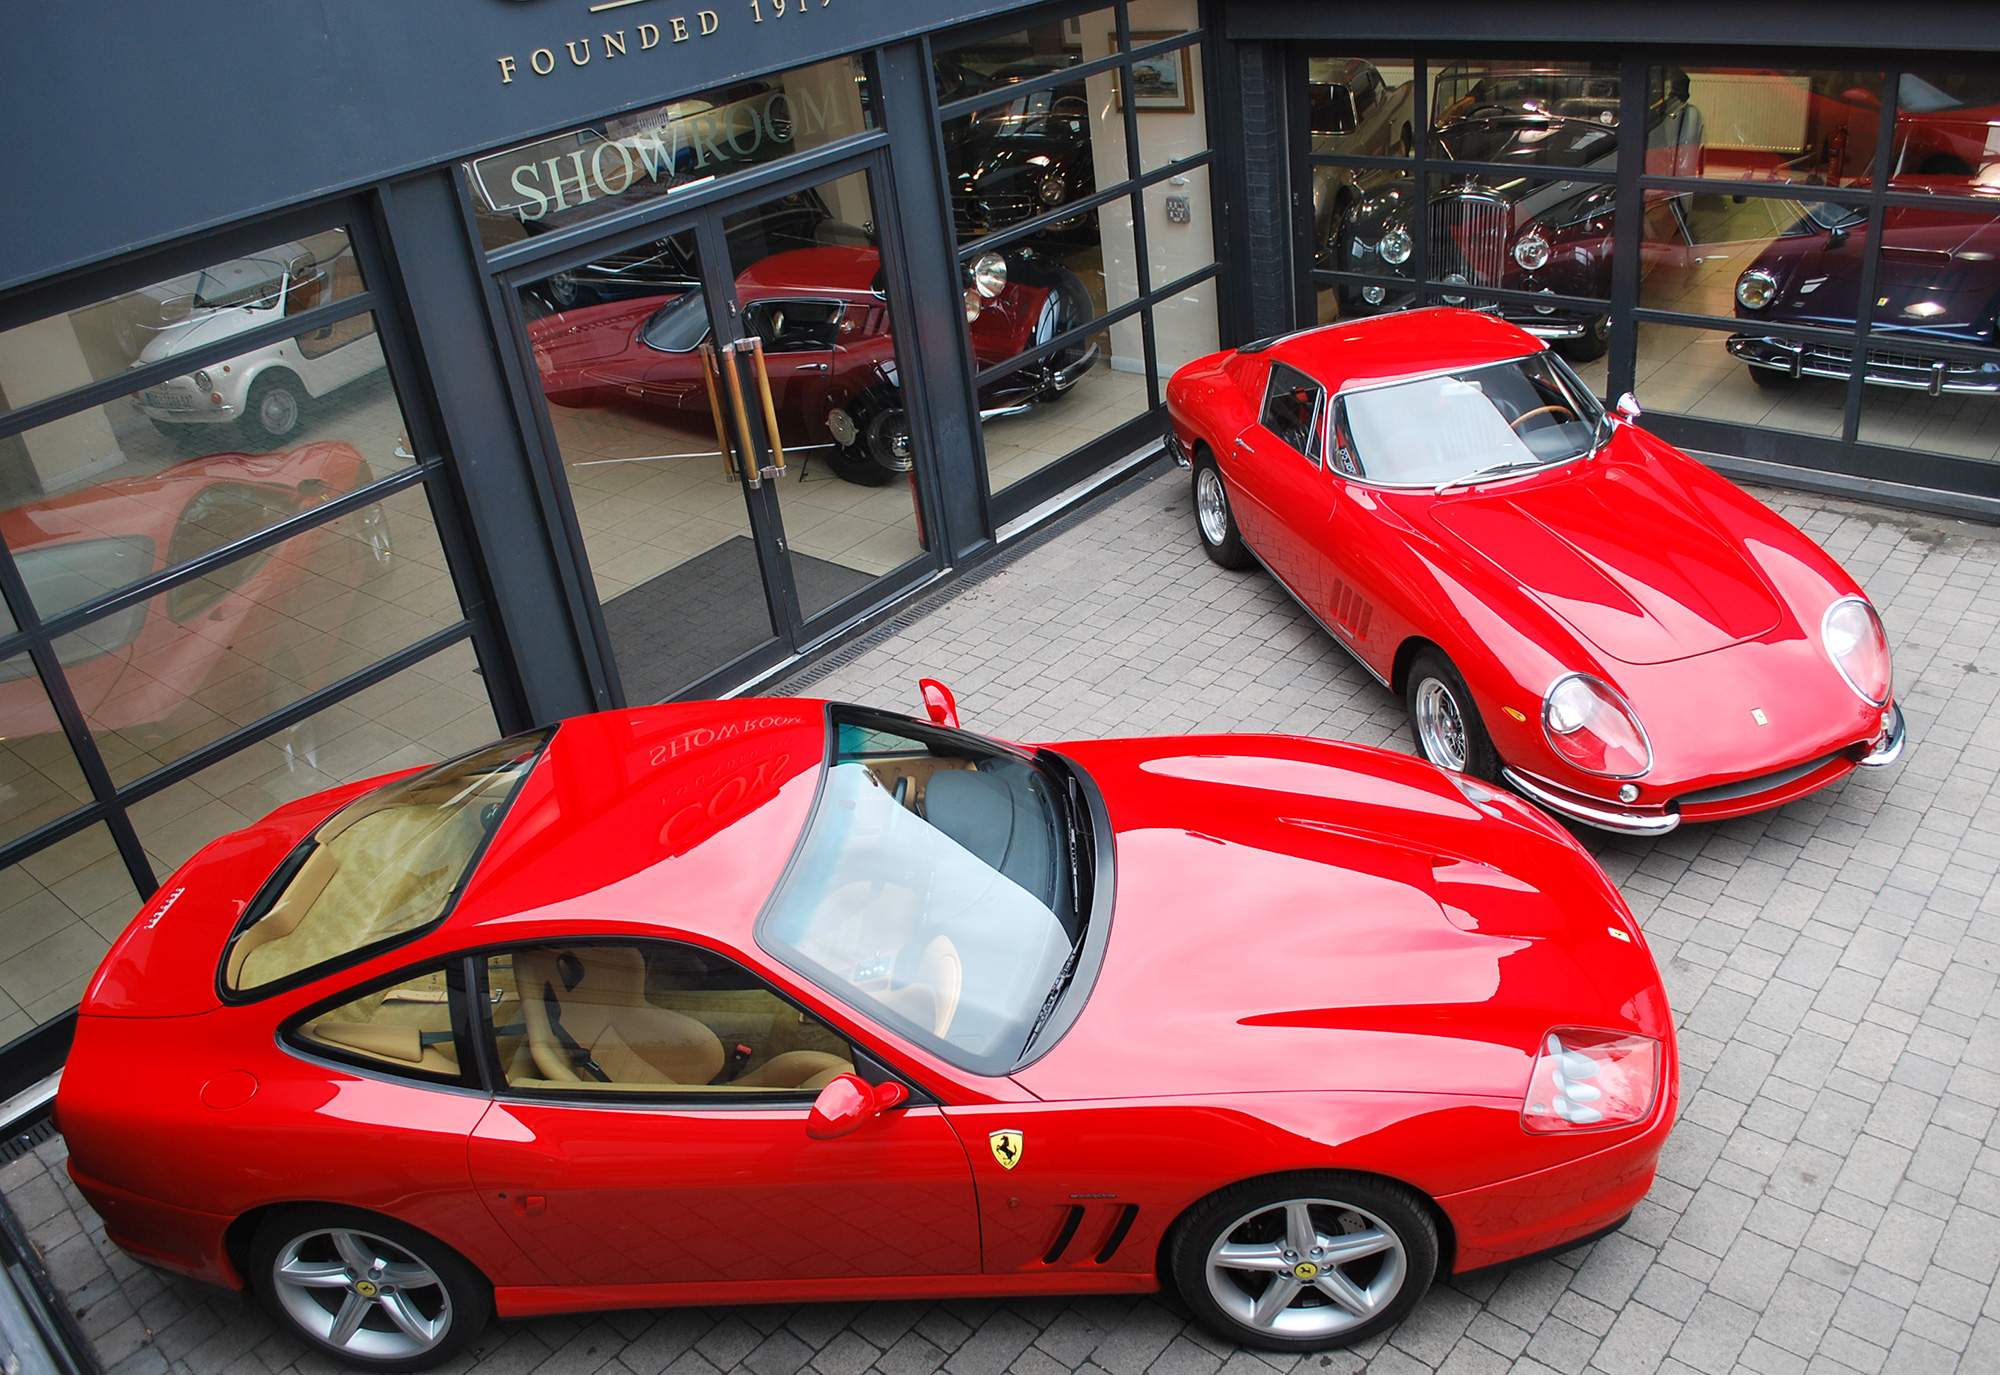 Pre-production-Ferrari-575MM-next-to-first-prototype-Ferrari-275-GTB4-(sold-by-Coys-in-May)_Coys-Fontwell_3.jpg